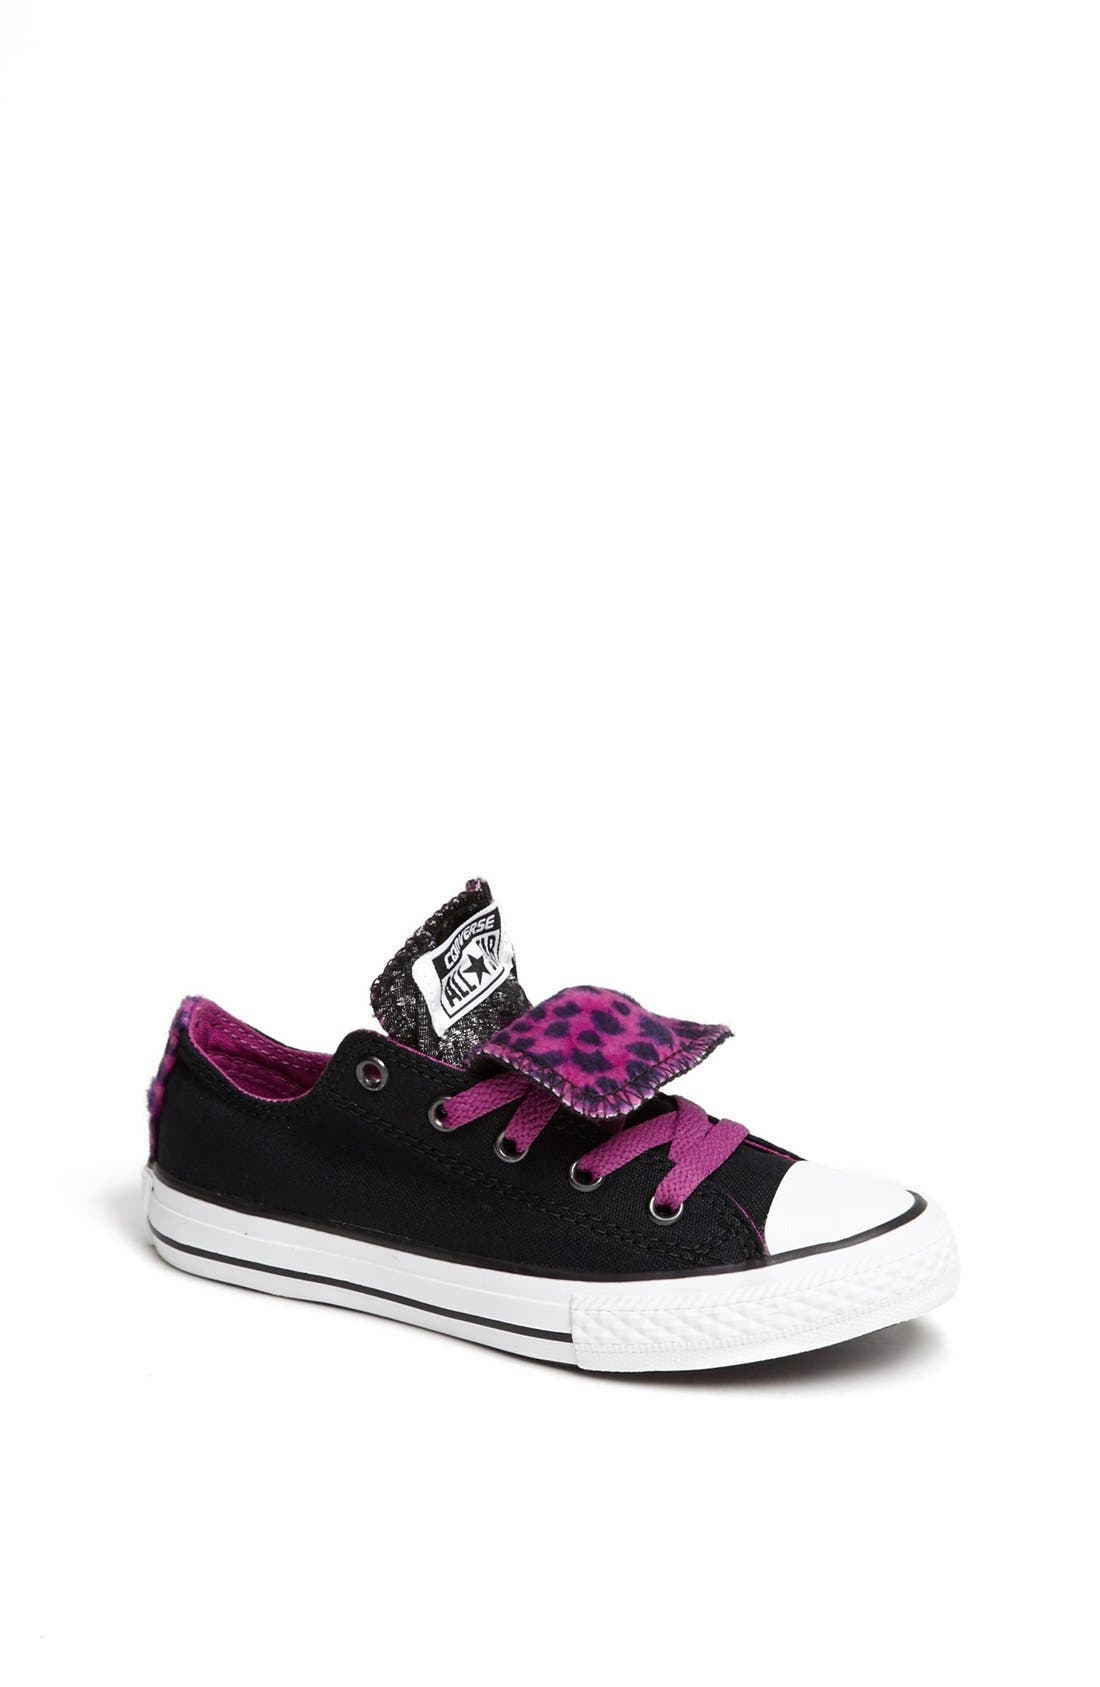 Alternate Image 1 Selected - Converse Chuck Taylor® All Star® Double Tongue Sneaker (Toddler, Little Kid & Big Kid)